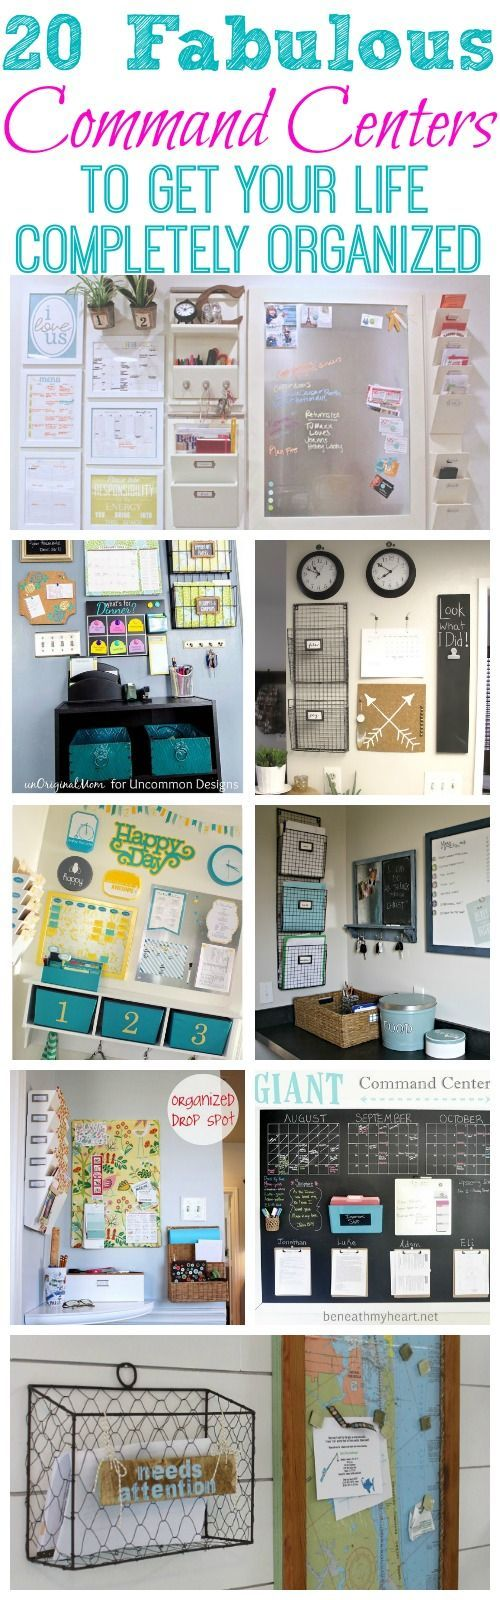 17 Best images about Family Command Center on Pinterest ...